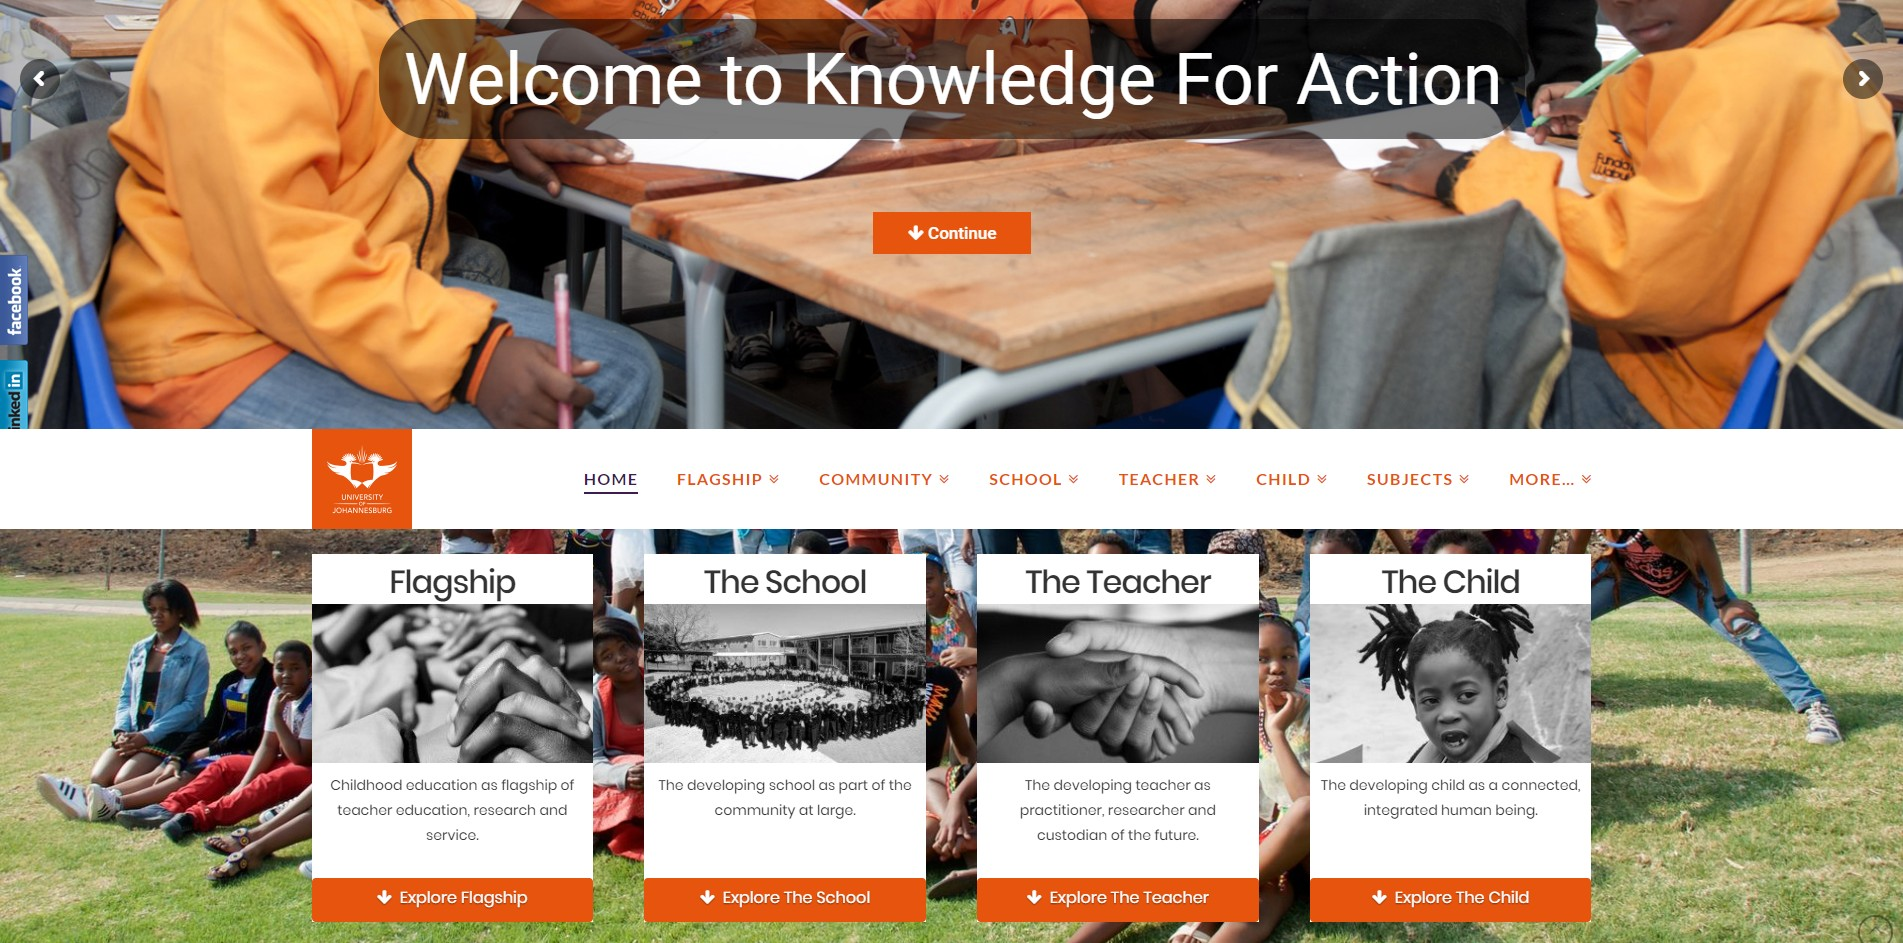 UJ Knowledge For Action Website